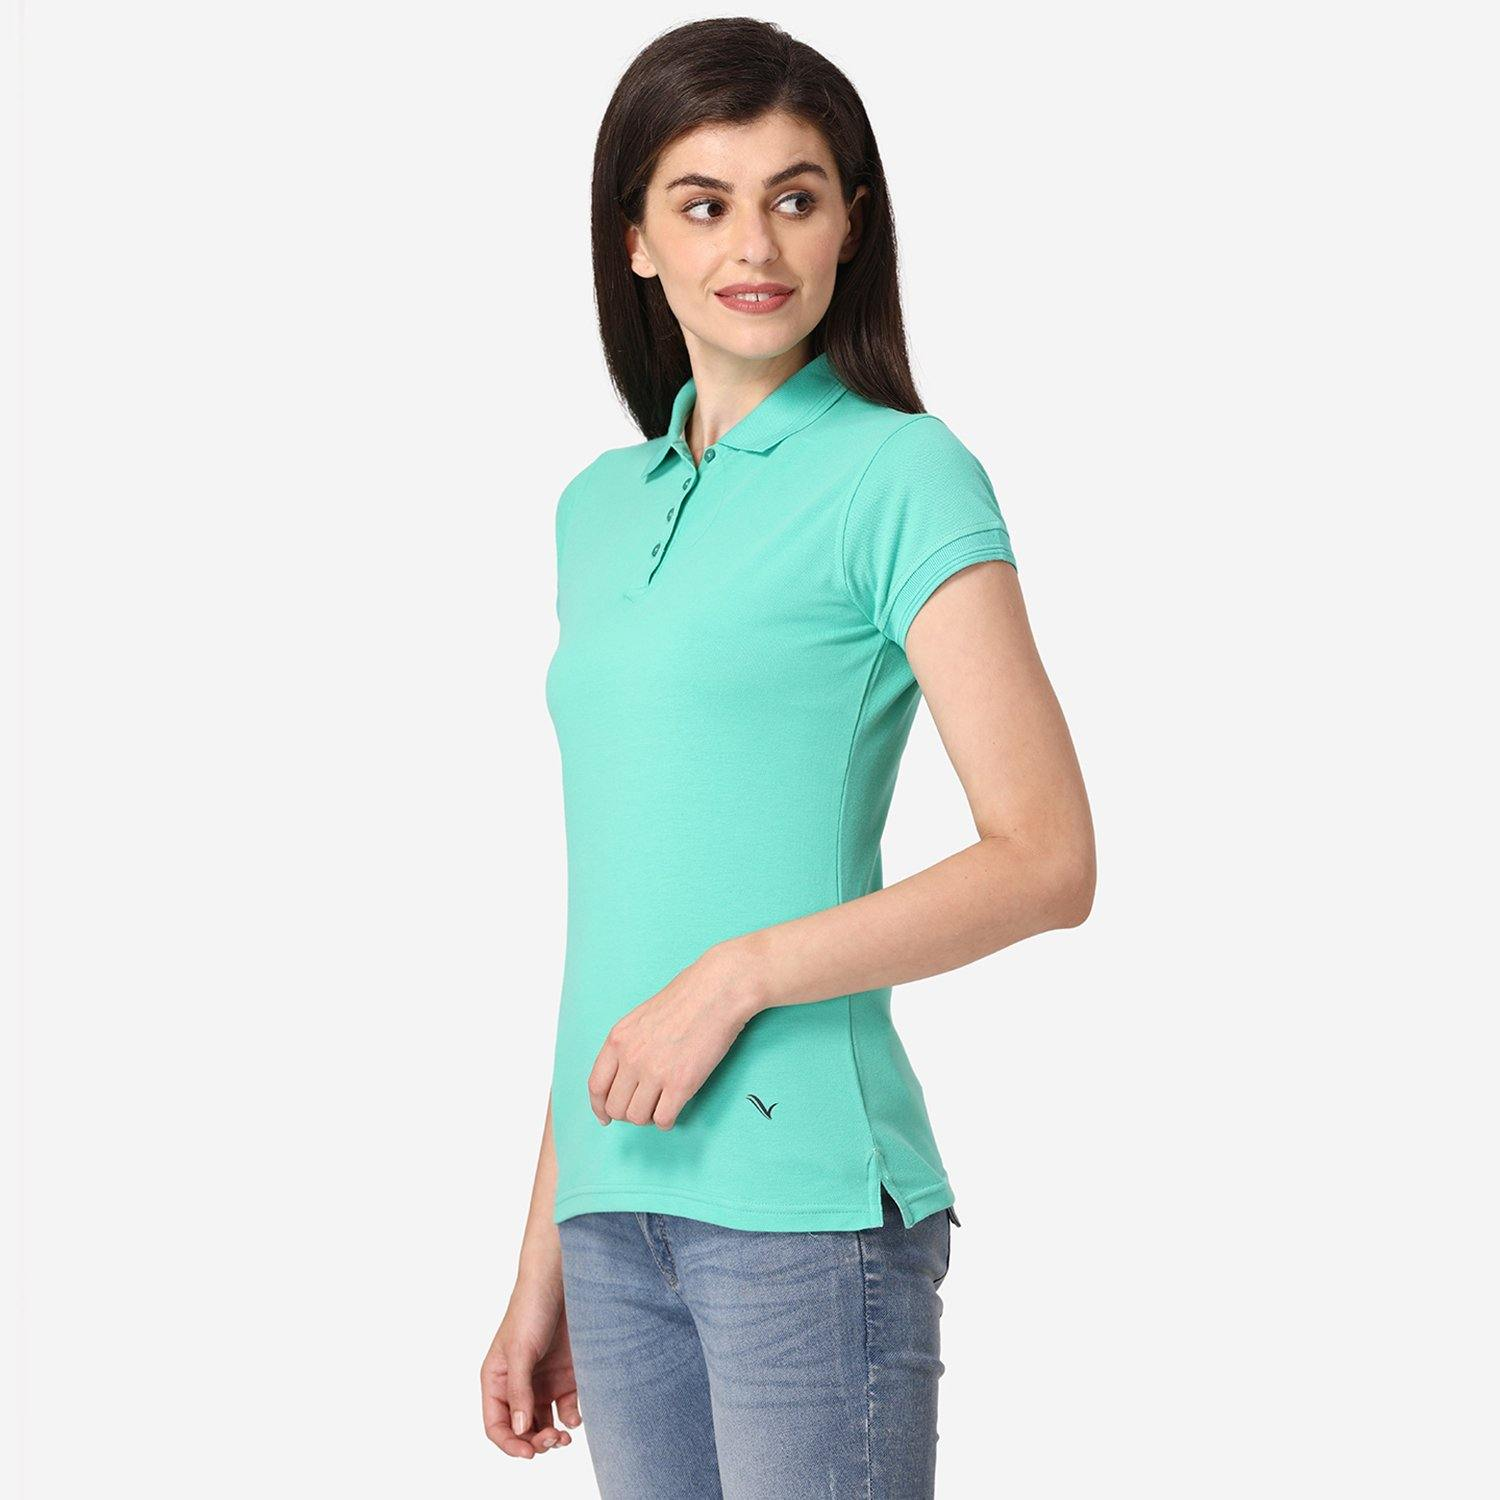 Women's Half Sleeve Polo T-Shirt - Mint Leaf